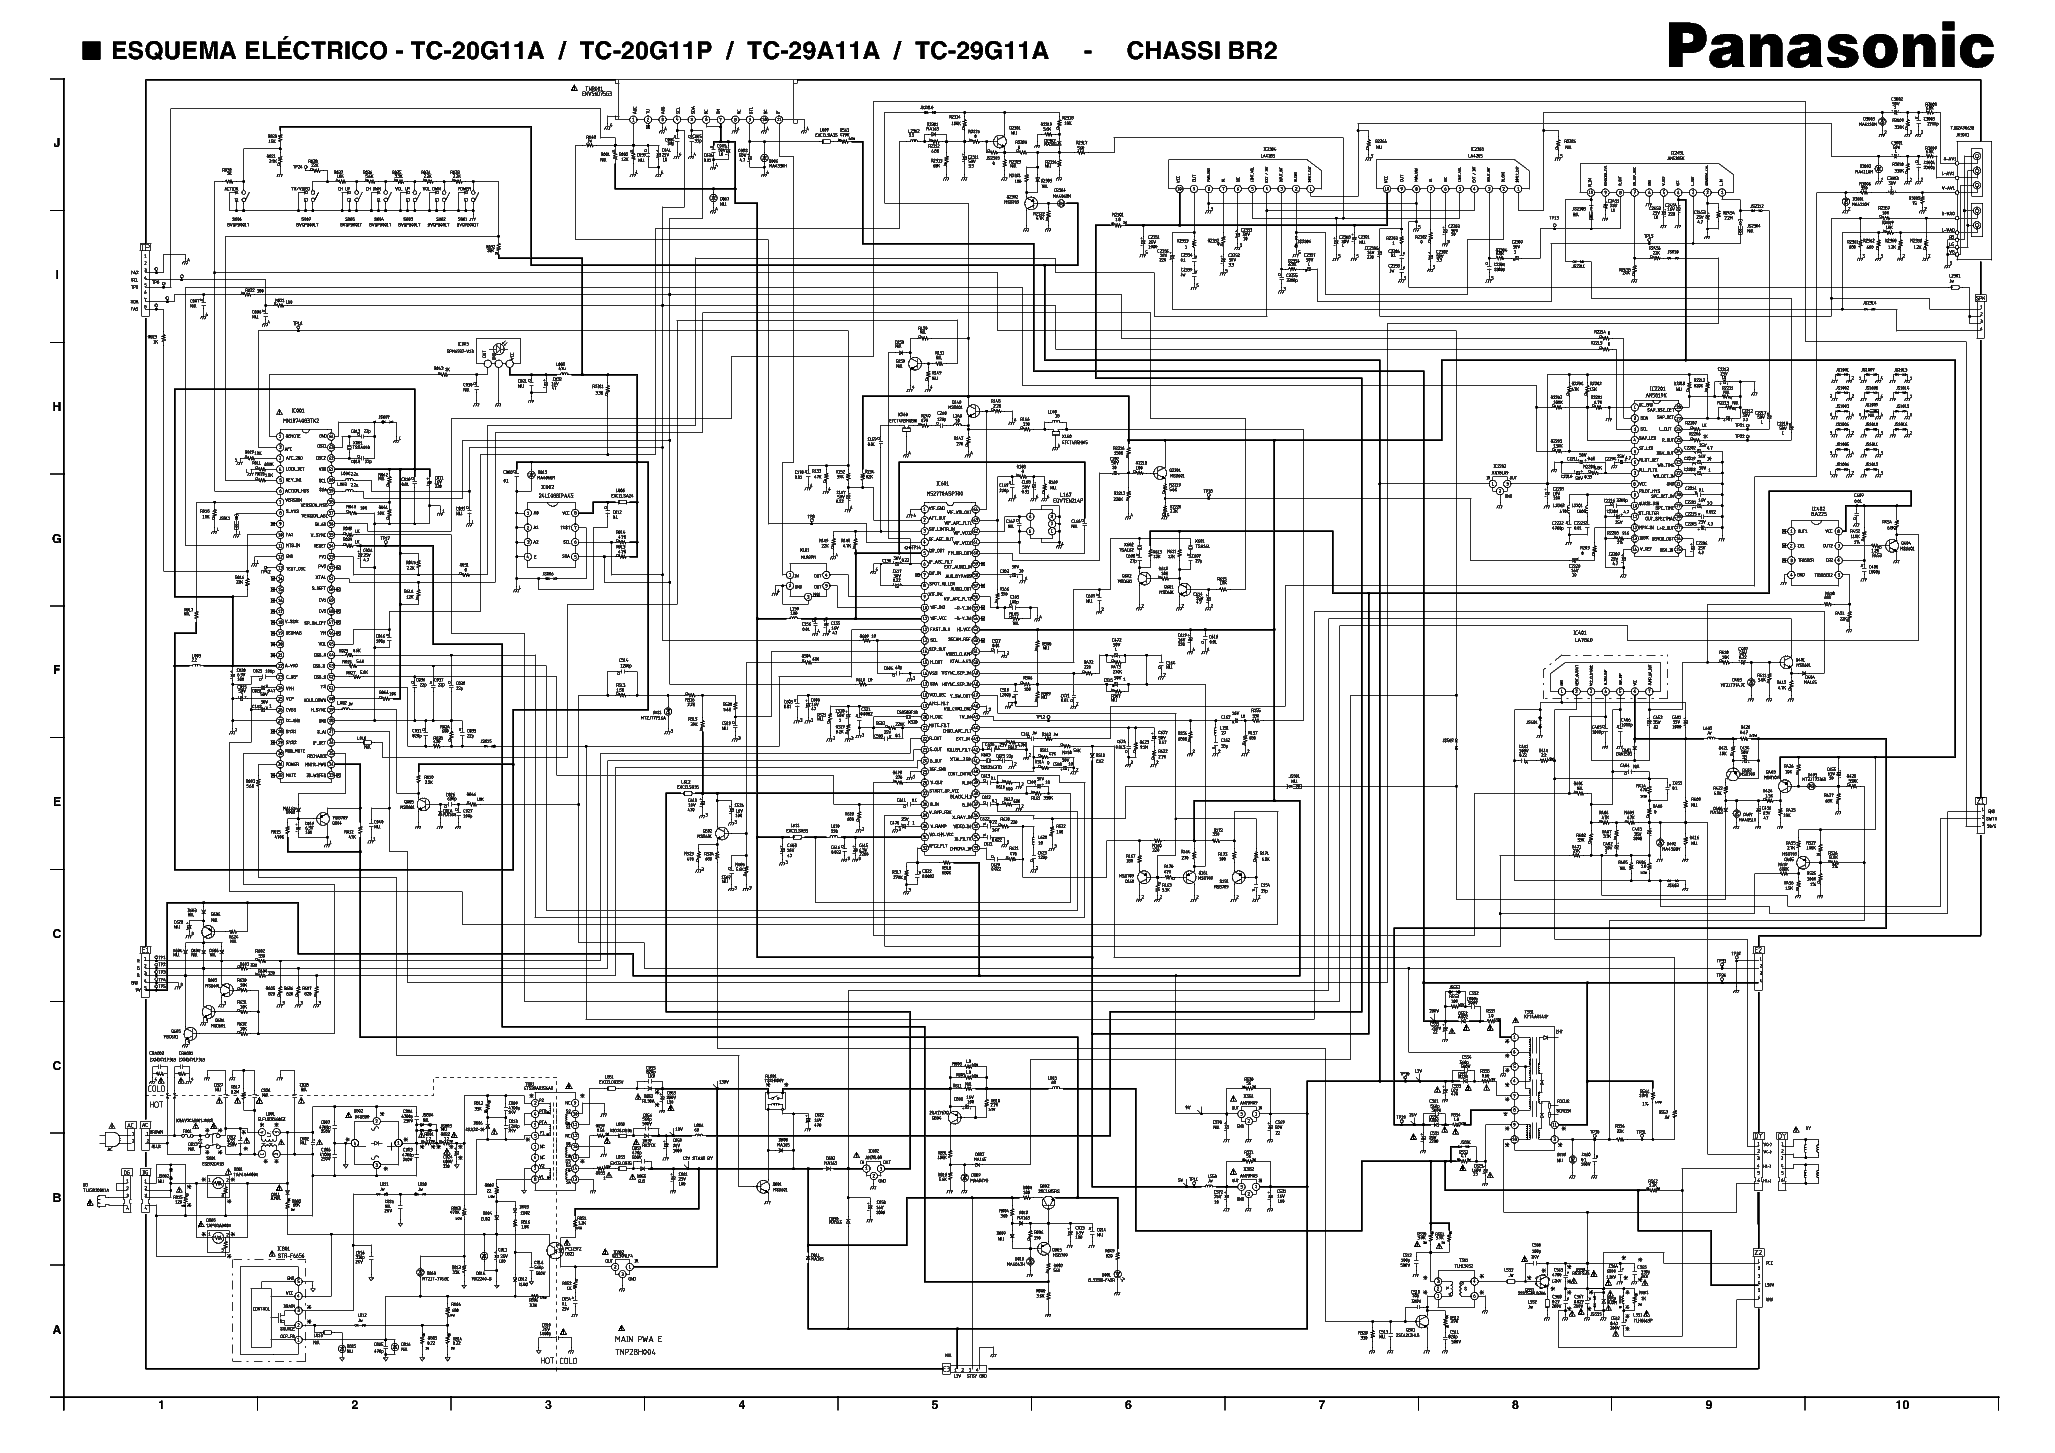 Power Wheels Wiring Harness Free Download Diagram Schematic Electrical Drawing At For Personal Use 2055x1453 Panasonic Tv Circuit Zen Components